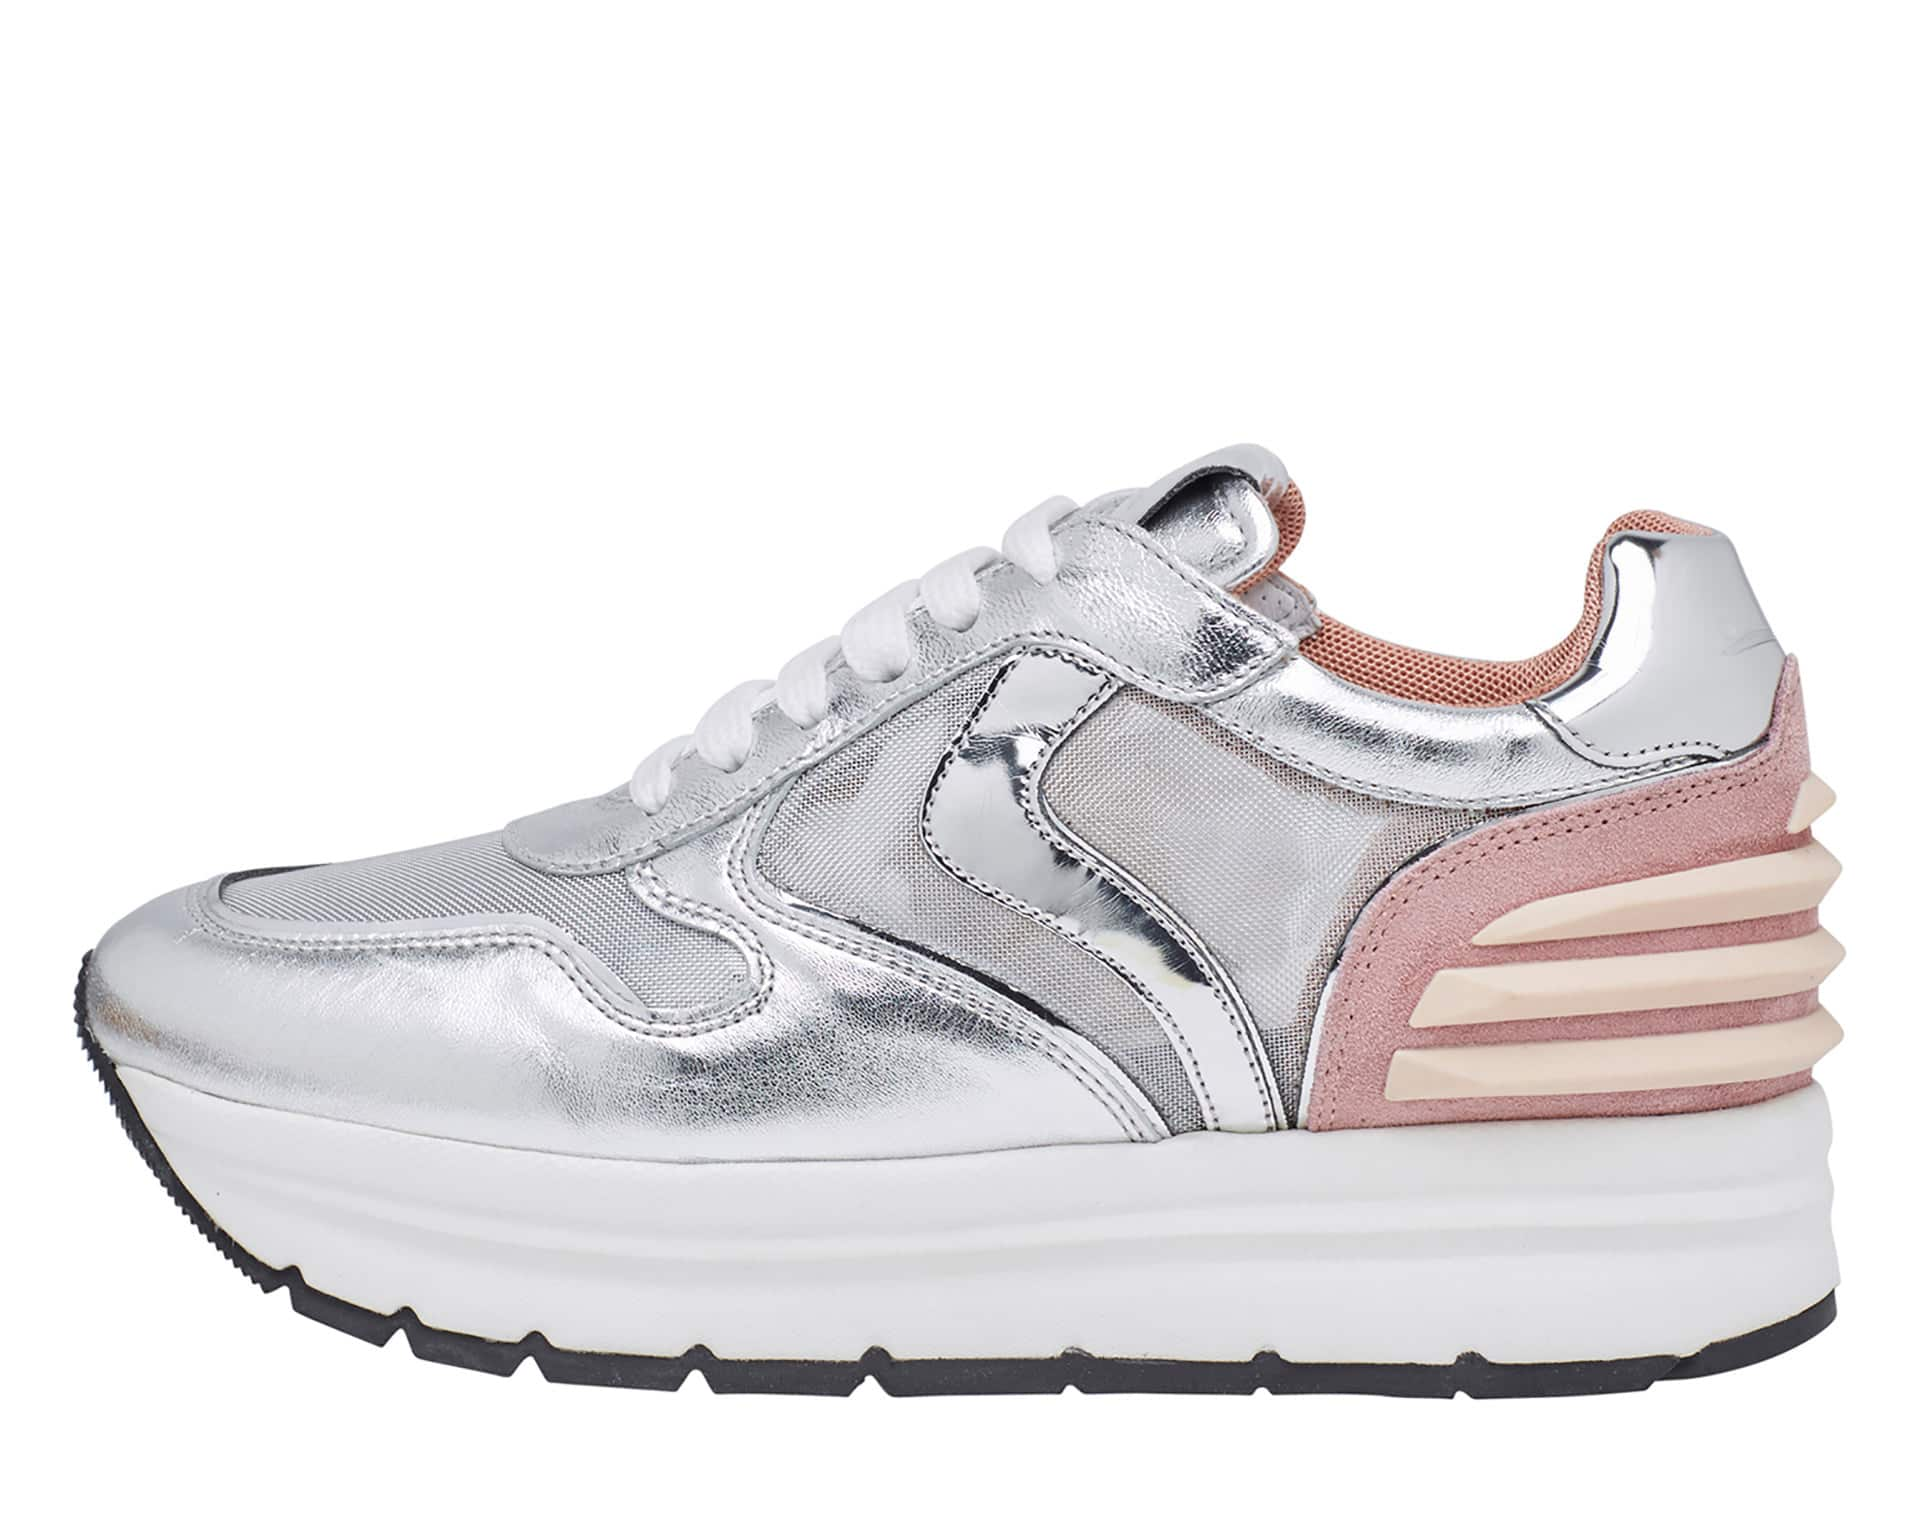 MAY POWER MESH - Sneakers in pelle e tessuto - Rosa/Argento